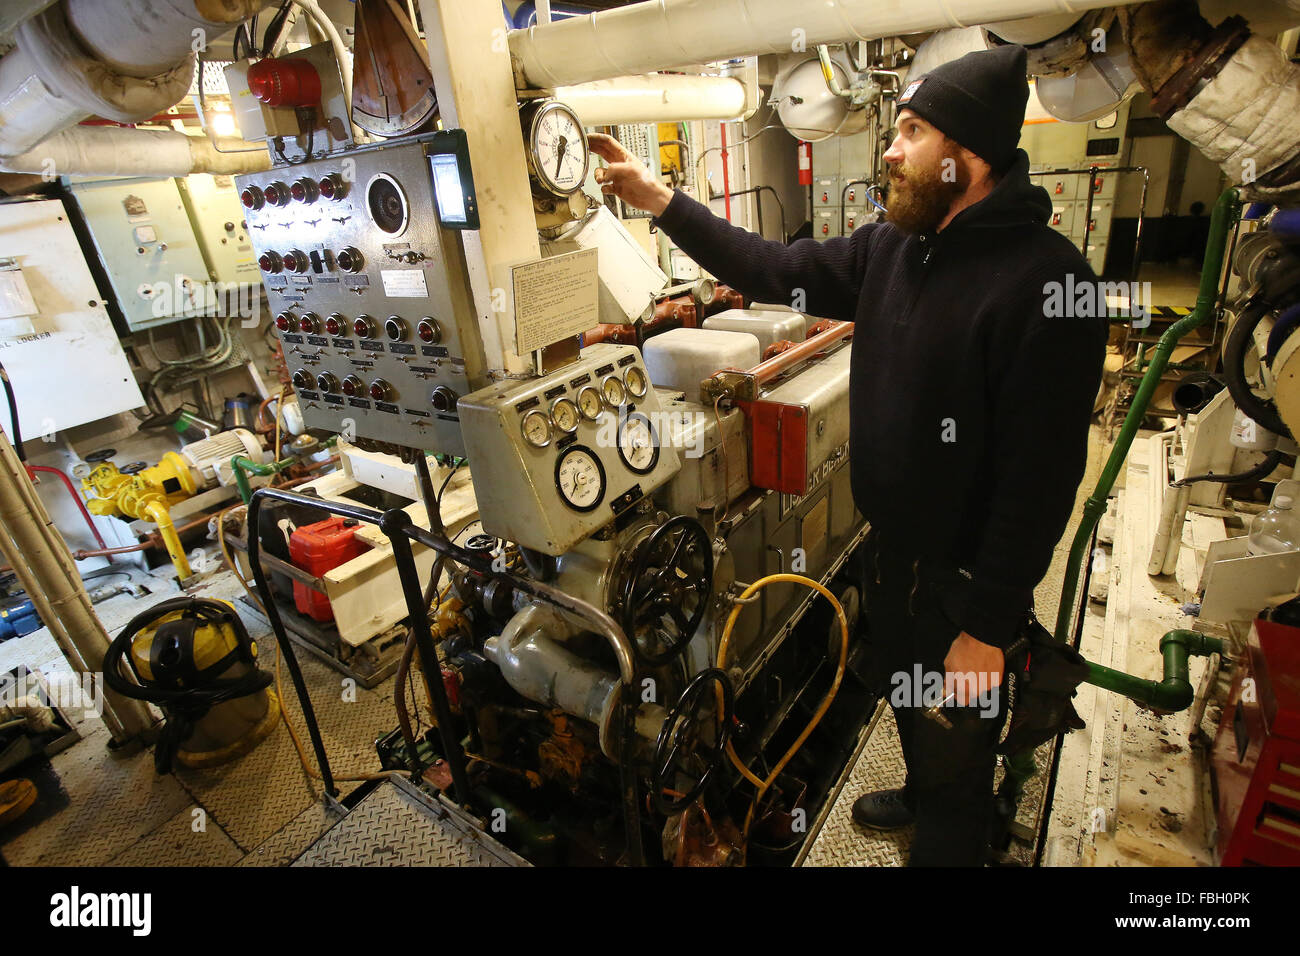 Hamburg, Germany. 8th Jan, 2016. Mashinist Peer Maak stands in the engine room of the former research vessel 'Clupea' - Stock Image